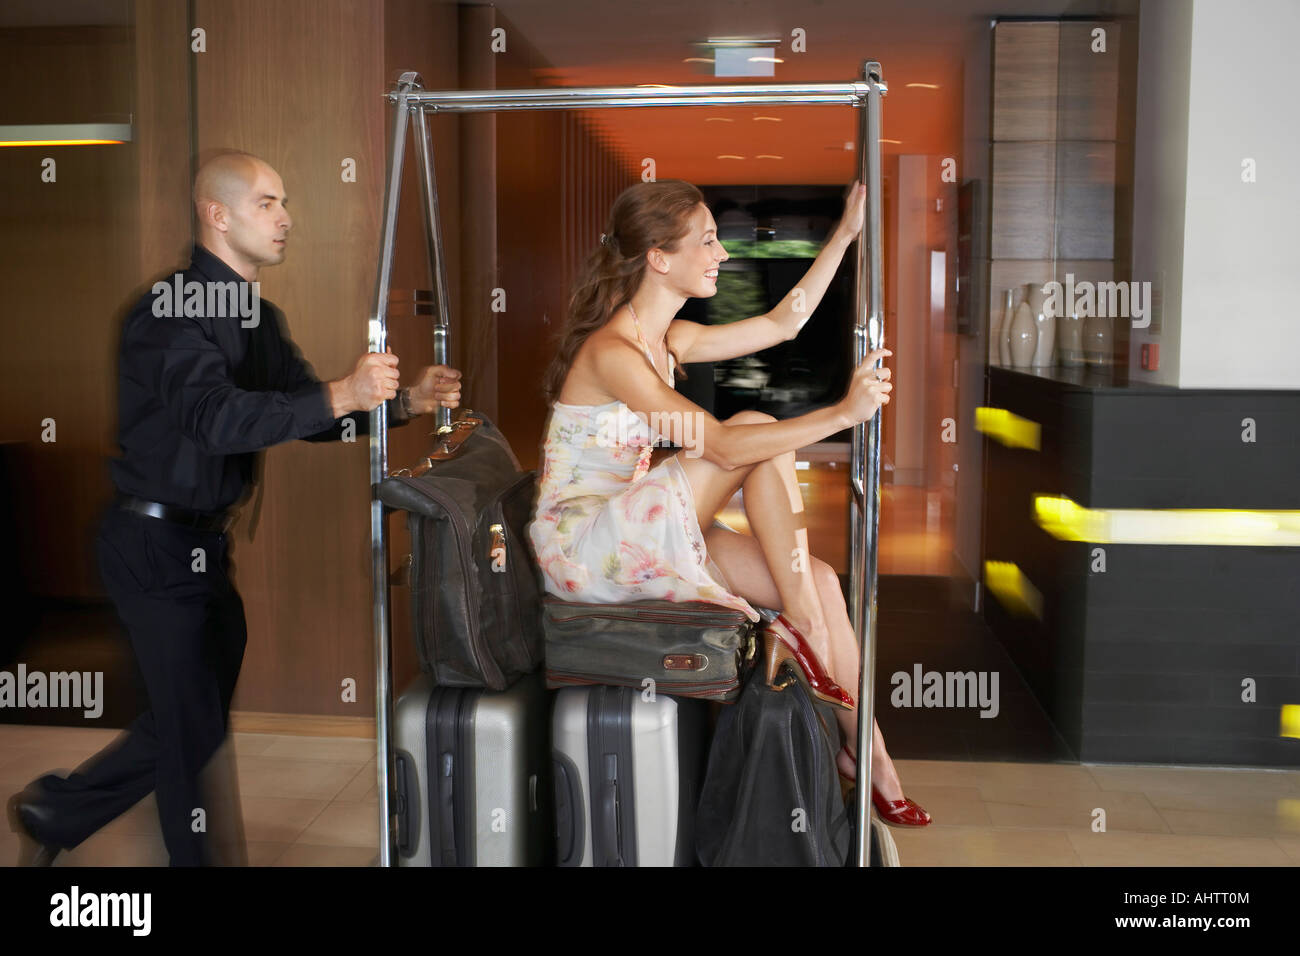 Bellboy pushing woman on luggage trolley - Stock Image